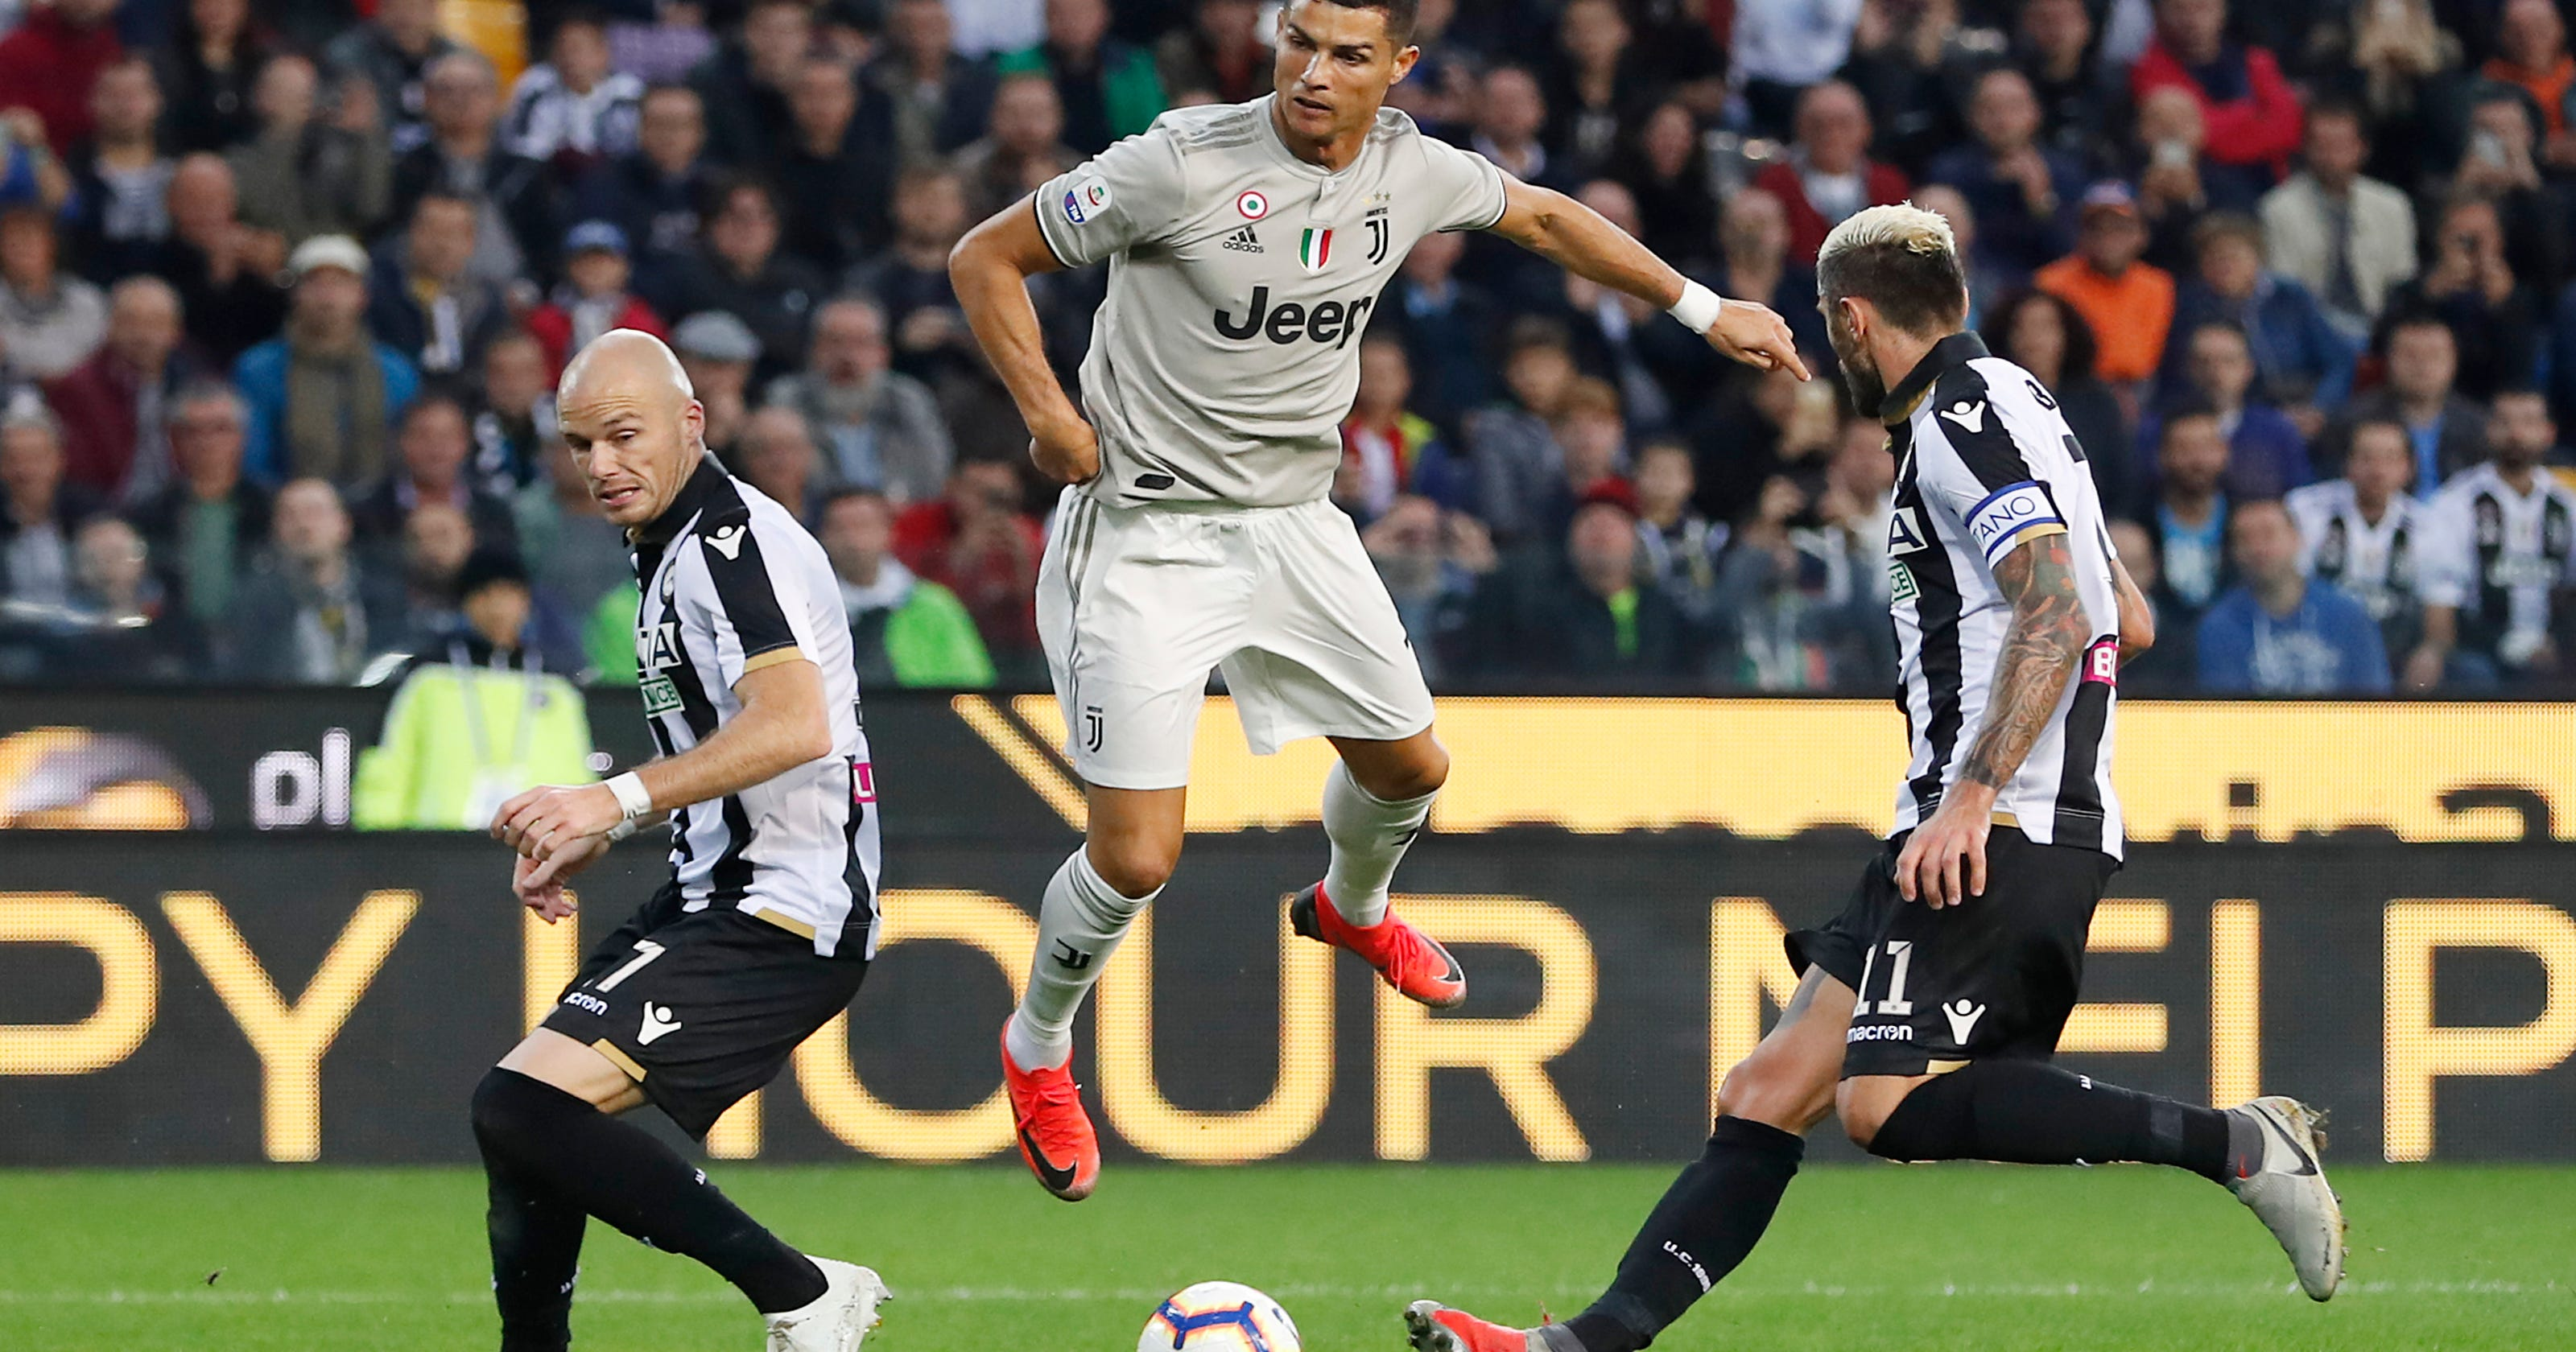 Ronaldo goal helps Juventus extend perfect start in Serie A